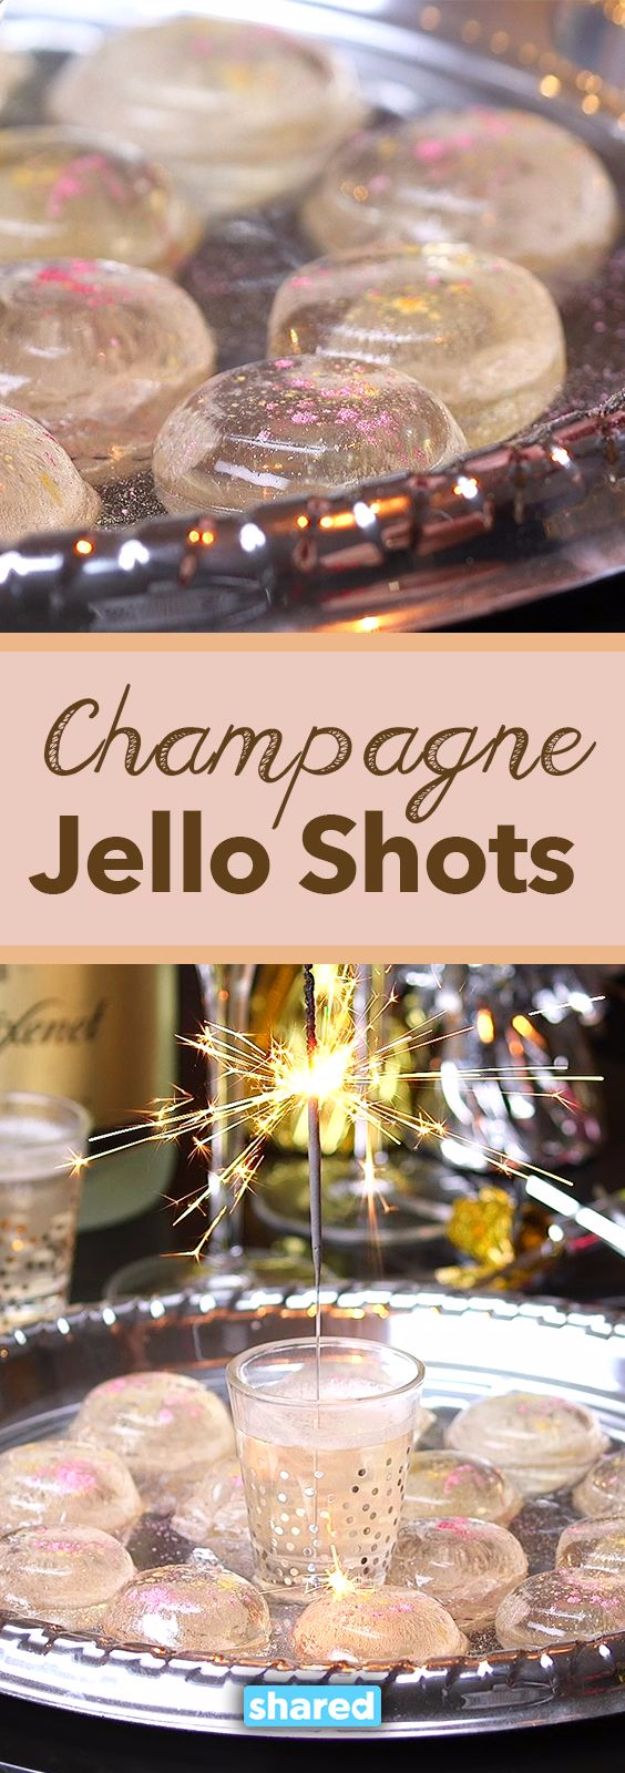 Best Jello Shot Recipes - Super Easy Champagne Jello Shots - Easy Jello Shots Recipe Ideas with Vodka, Strawberry, Tequila, Rum, Jolly Rancher and Creative Alcohol - Unique and Fun Drinks for Parties like Whiskey Fireball, Fall Halloween Versions, Malibu, 4th of July, Birthday, Summer, Christmas and Birthdays http://diyjoy.com/best-jello-shot-recipes